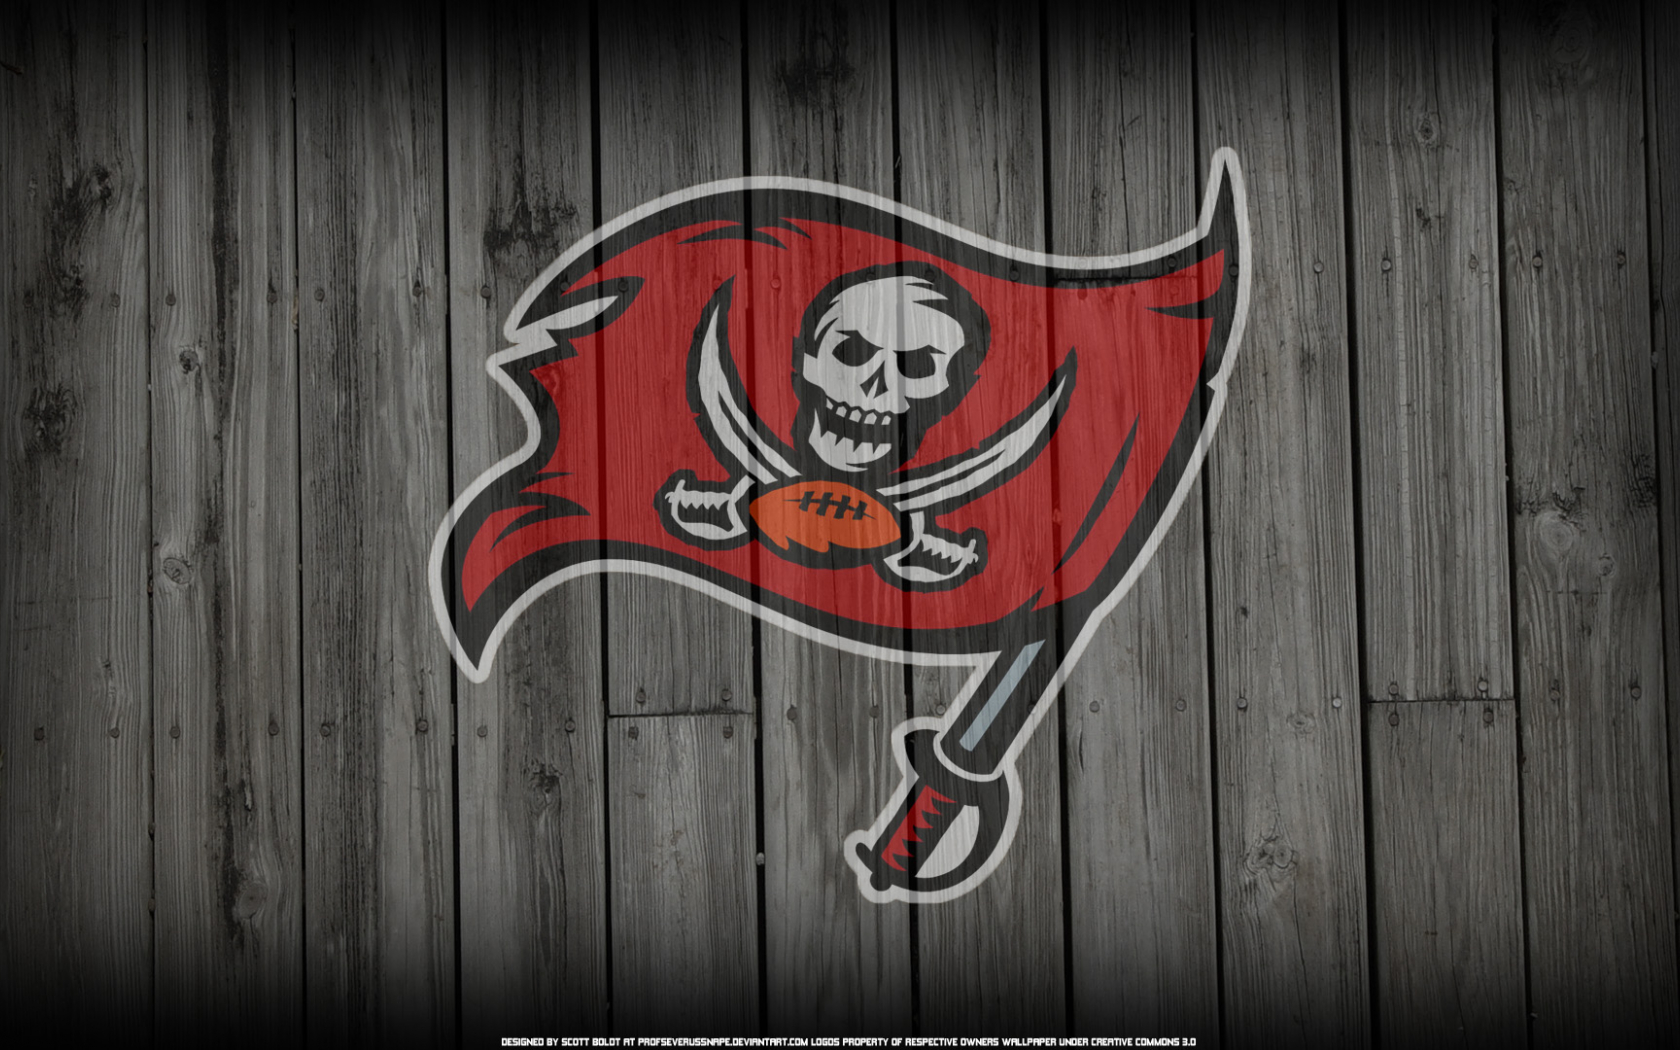 Free Download Tampa Bay Buccaneers Wallpapers Hd Wallpapers Early 1920x1080 For Your Desktop Mobile Tablet Explore 45 Tampa Bay Buccaneers Wallpaper Hd Tampa Bay Bucs Iphone Wallpaper